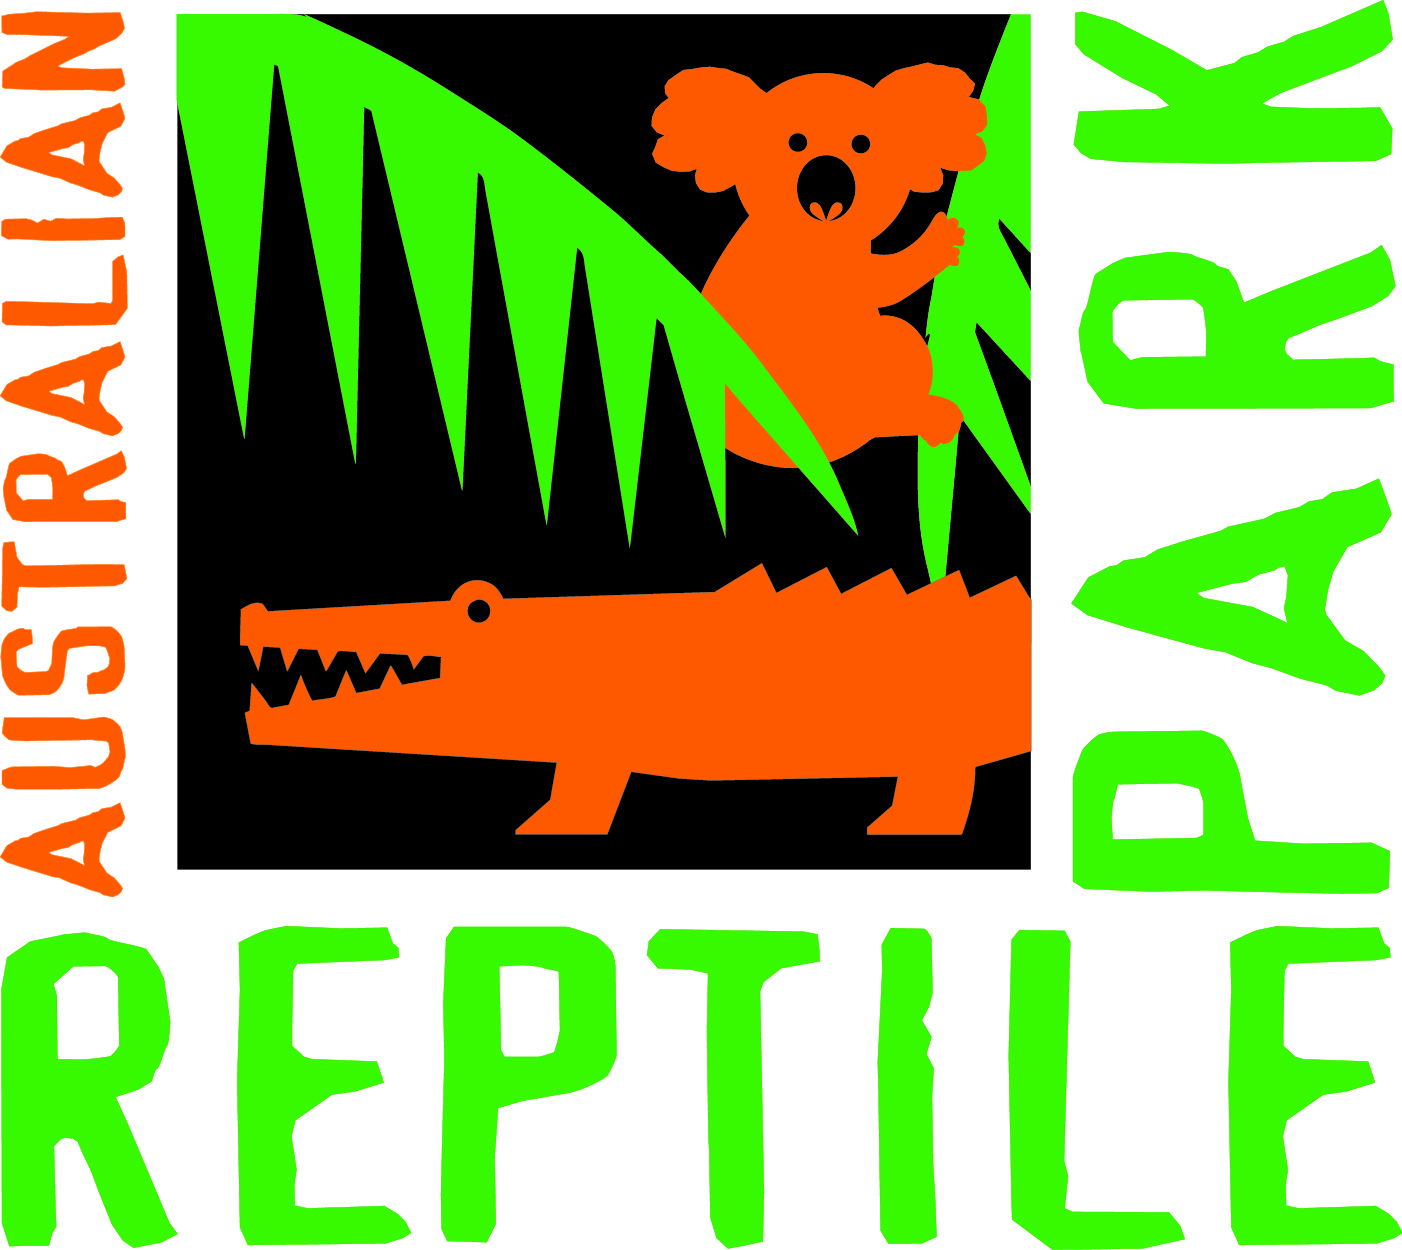 Australian Reptile Park - New South Wales Tourism